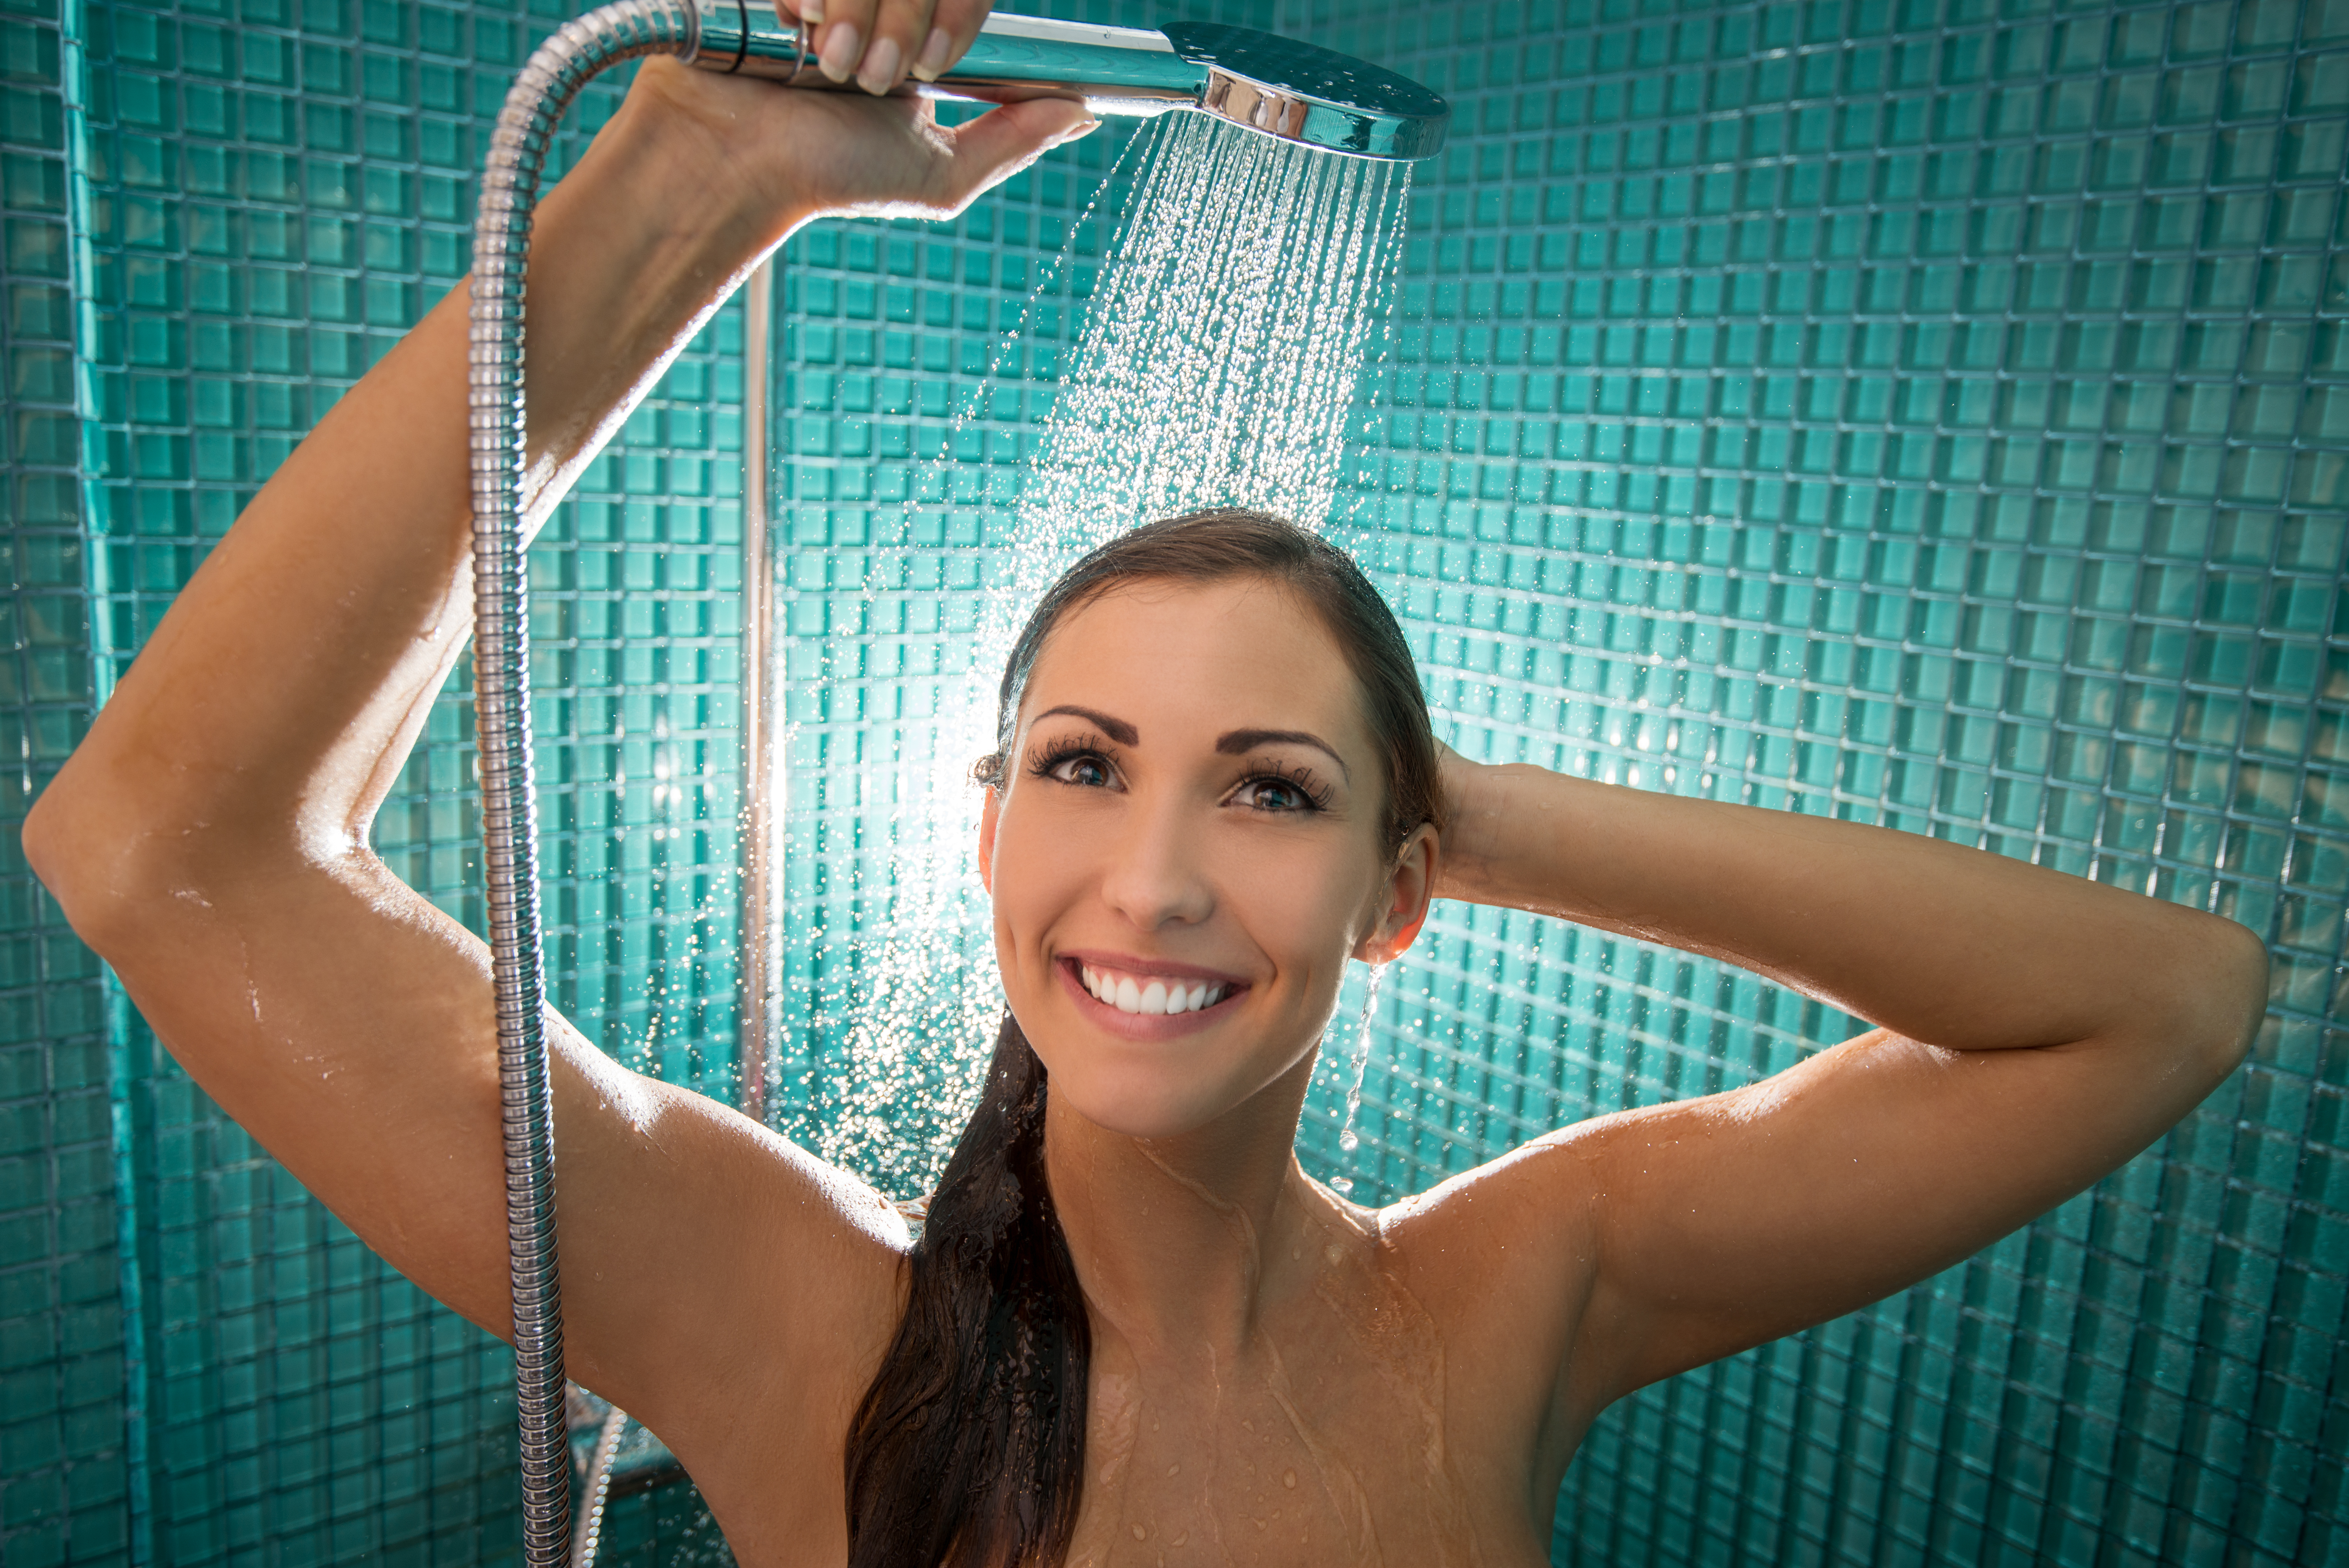 You're Not A Dirtbag, Daily Showers Are Actually Not Great For You